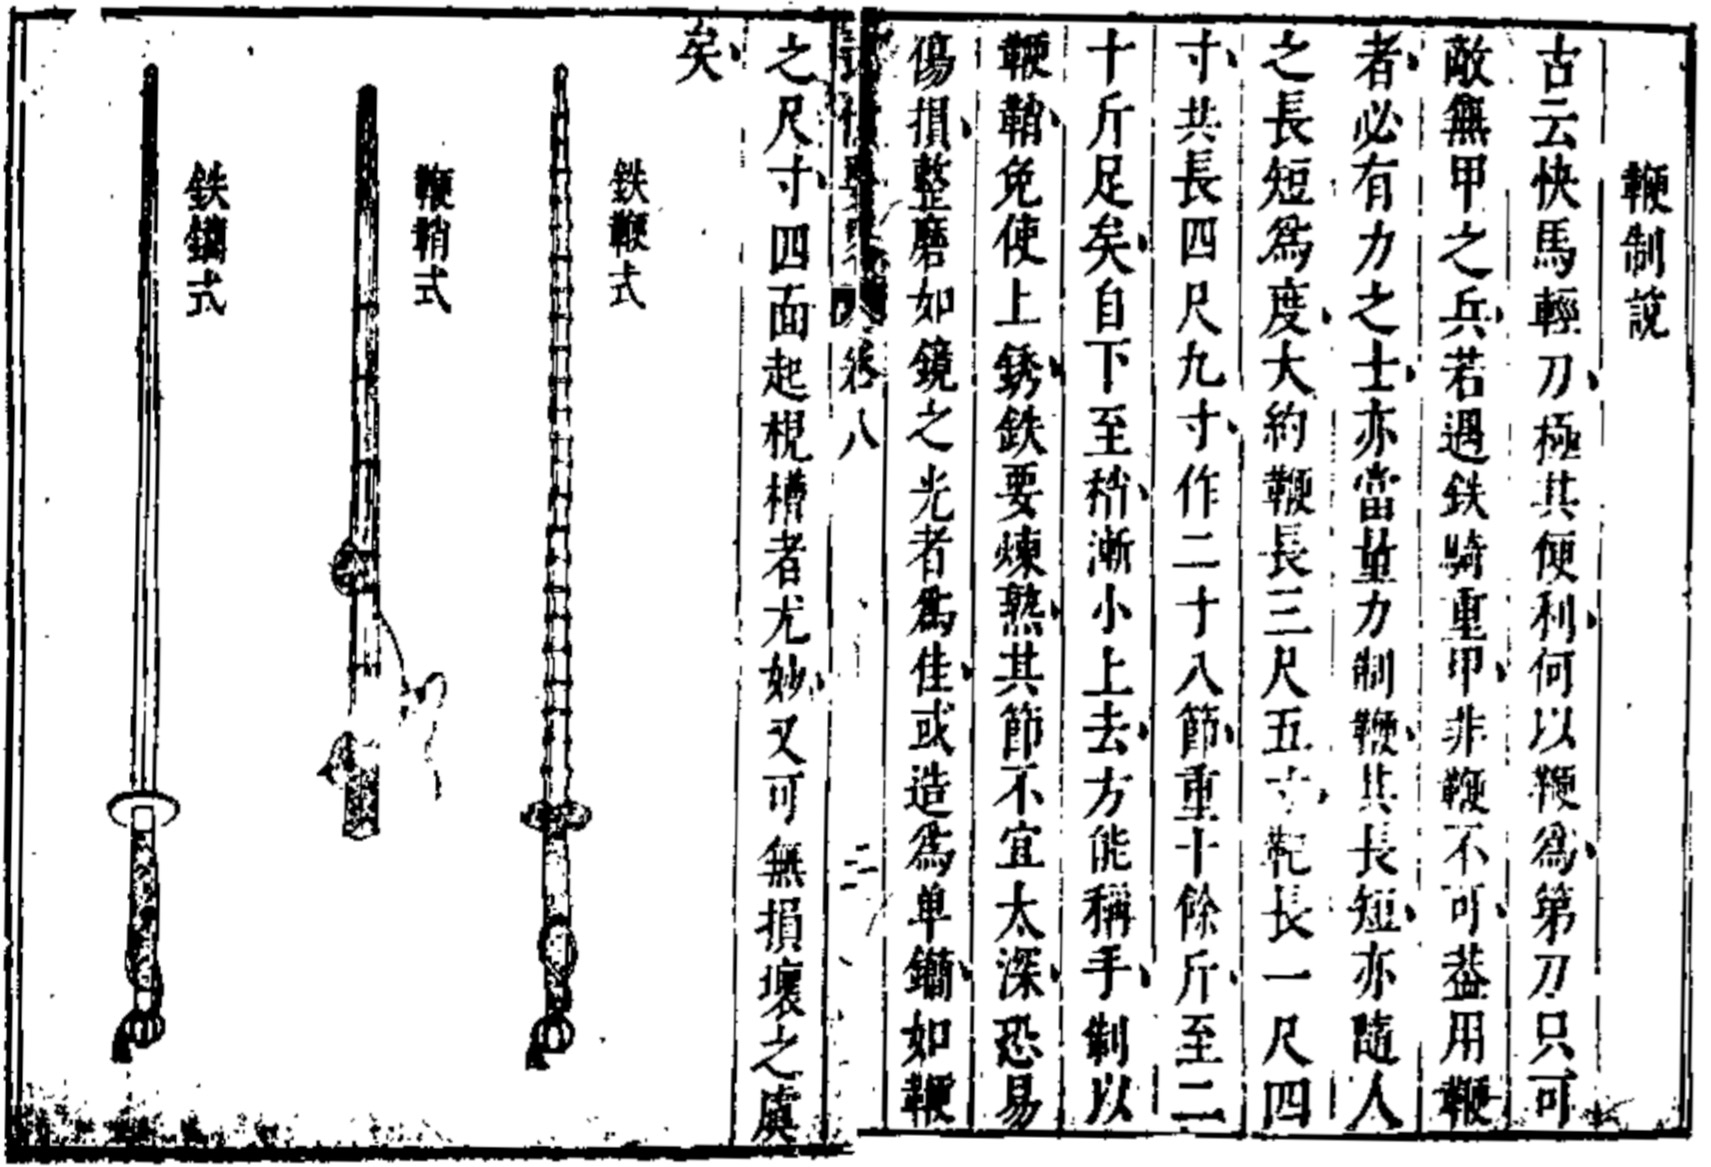 Chinese two handed maces in the Ming Wubei Yaolue